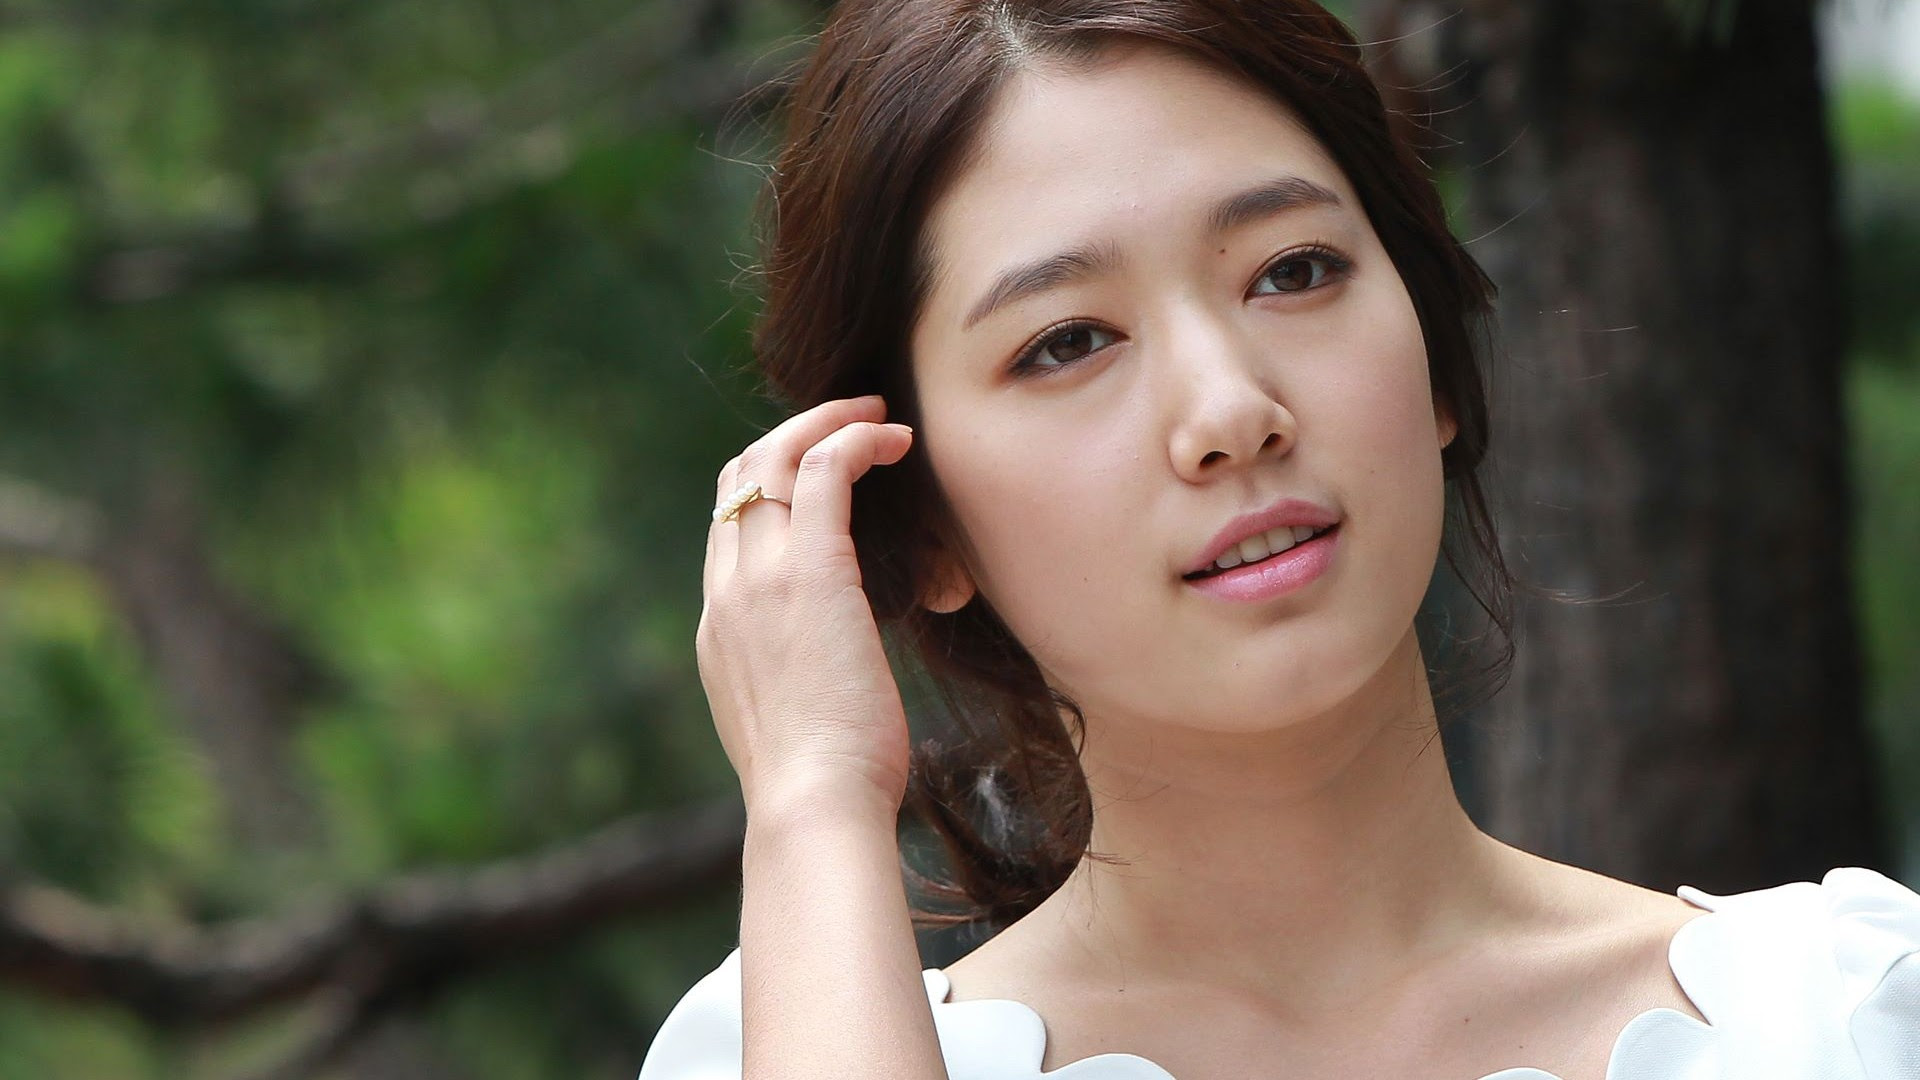 Park Shin Hye Images Park Shin Hye Hd Wallpaper And Background